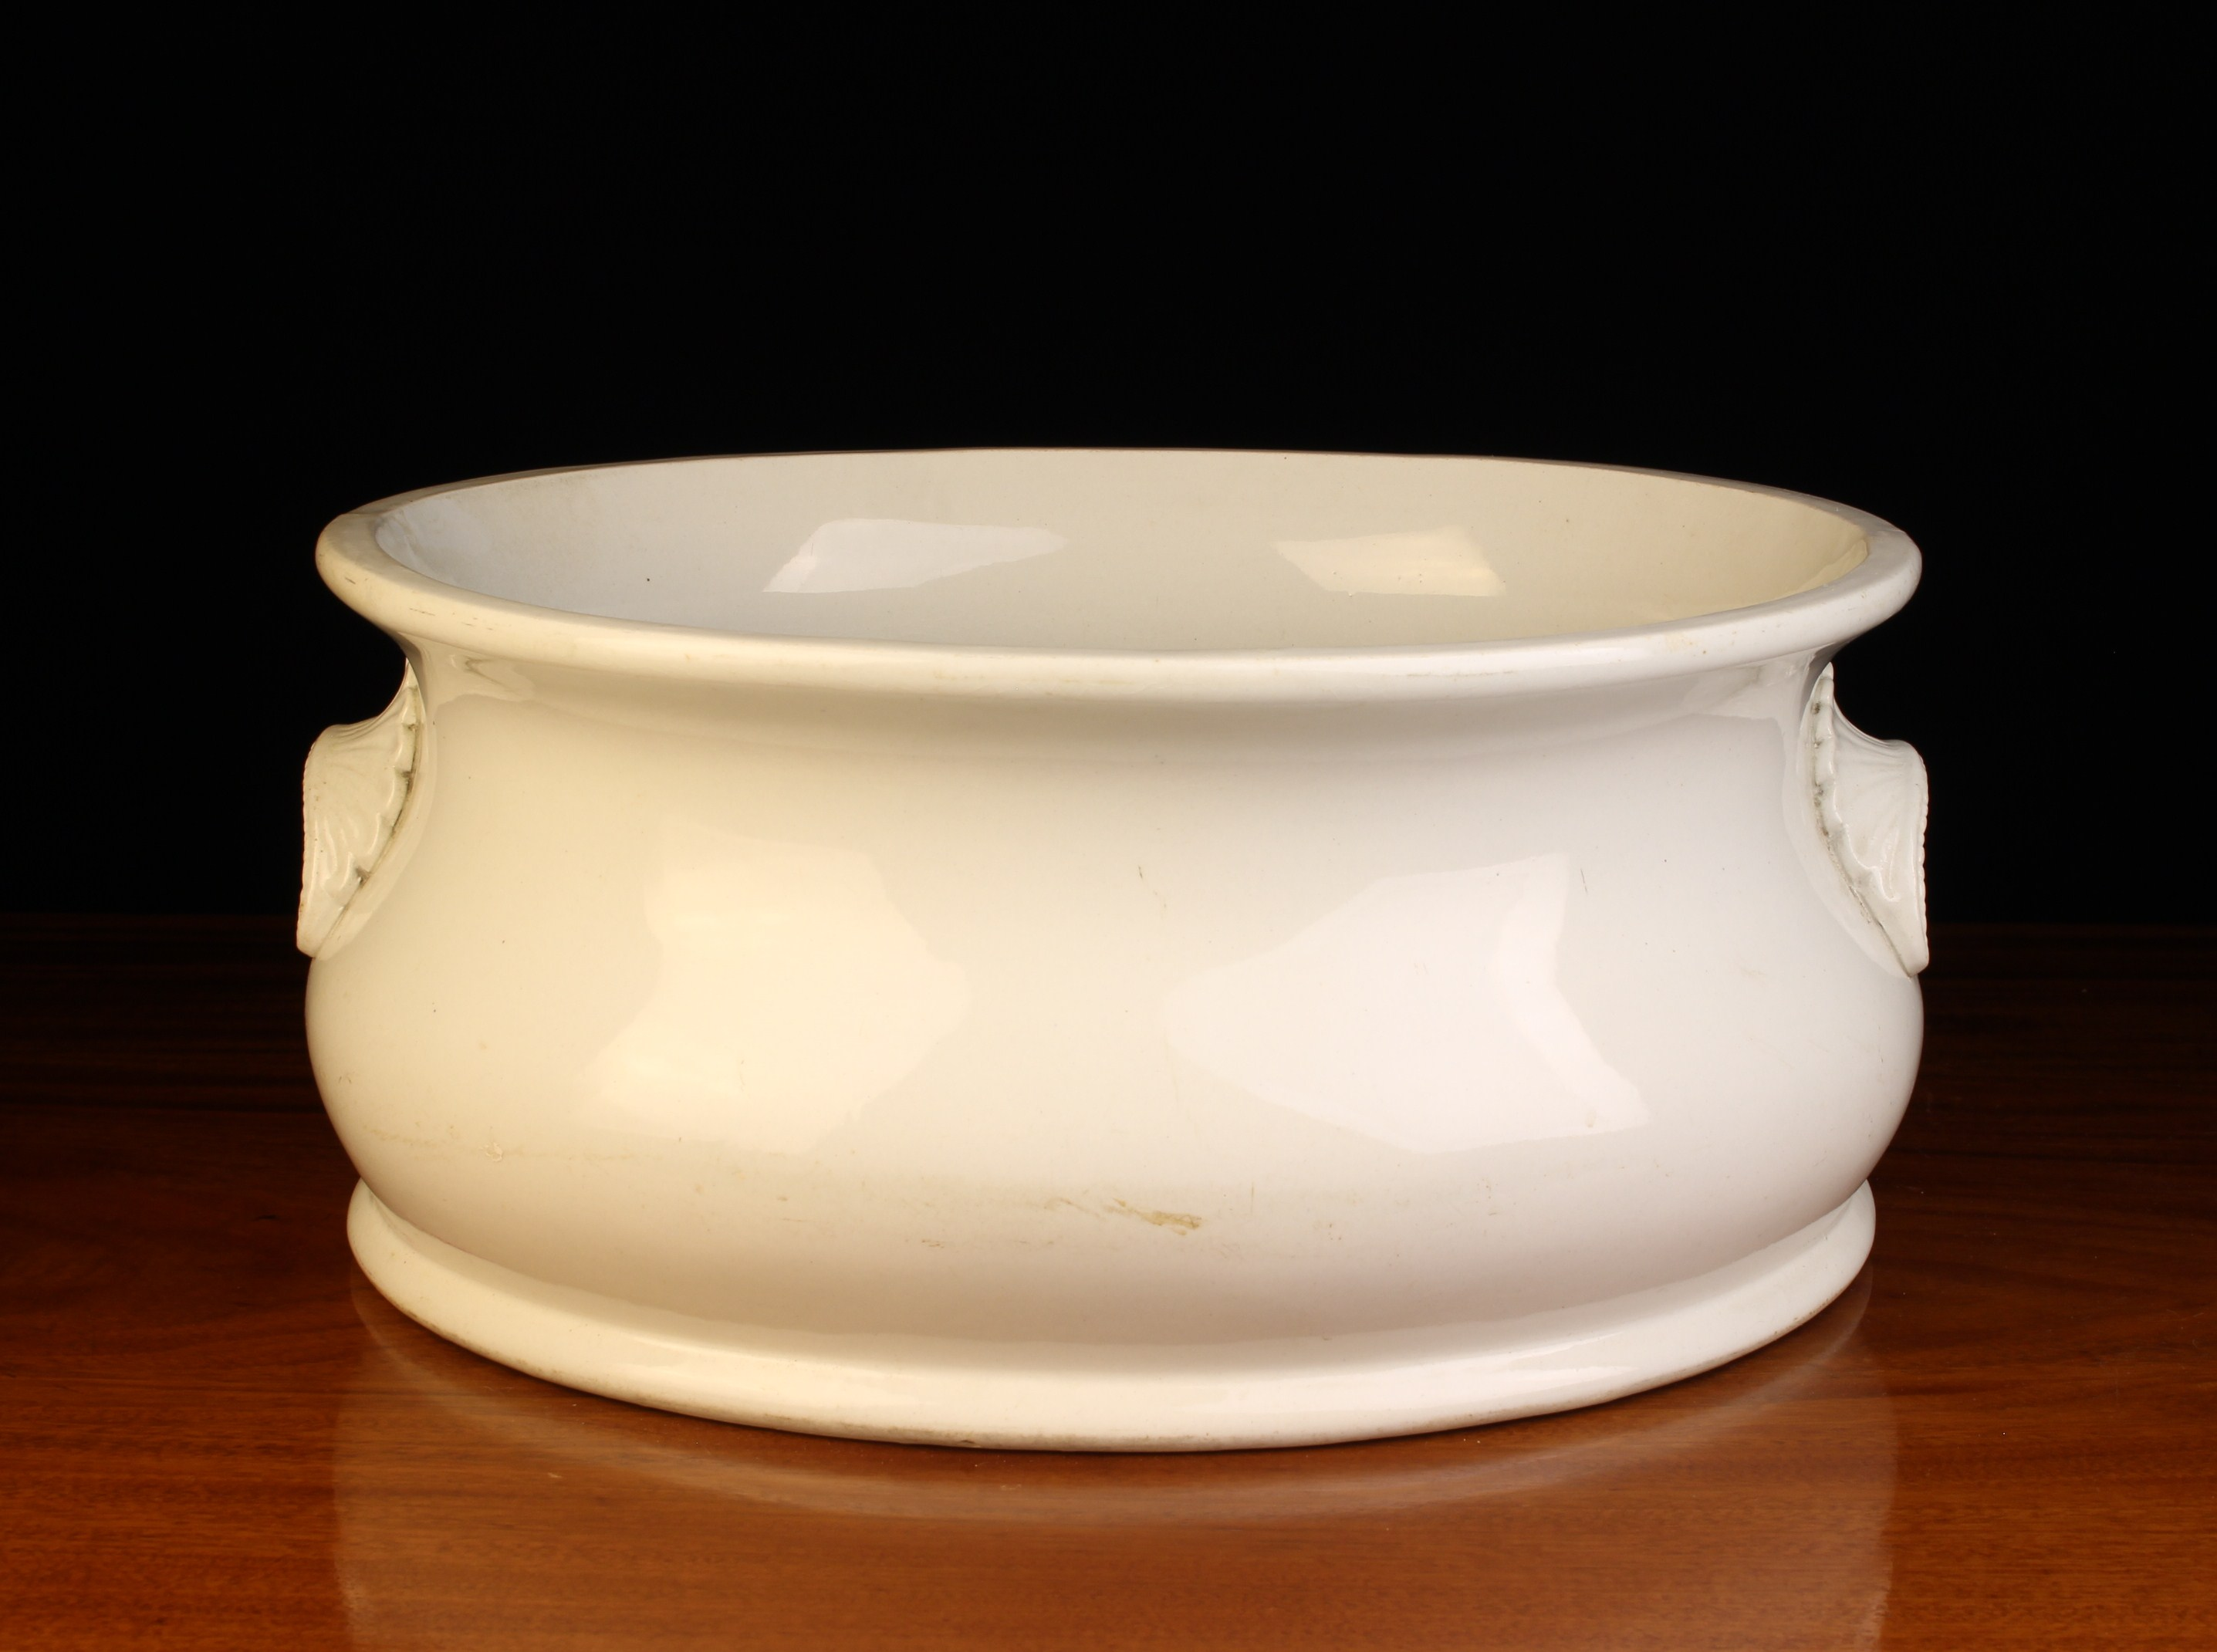 A 19th Century White Glazed Belleek Pottery Foot Bath with decorative moulded lip handles either